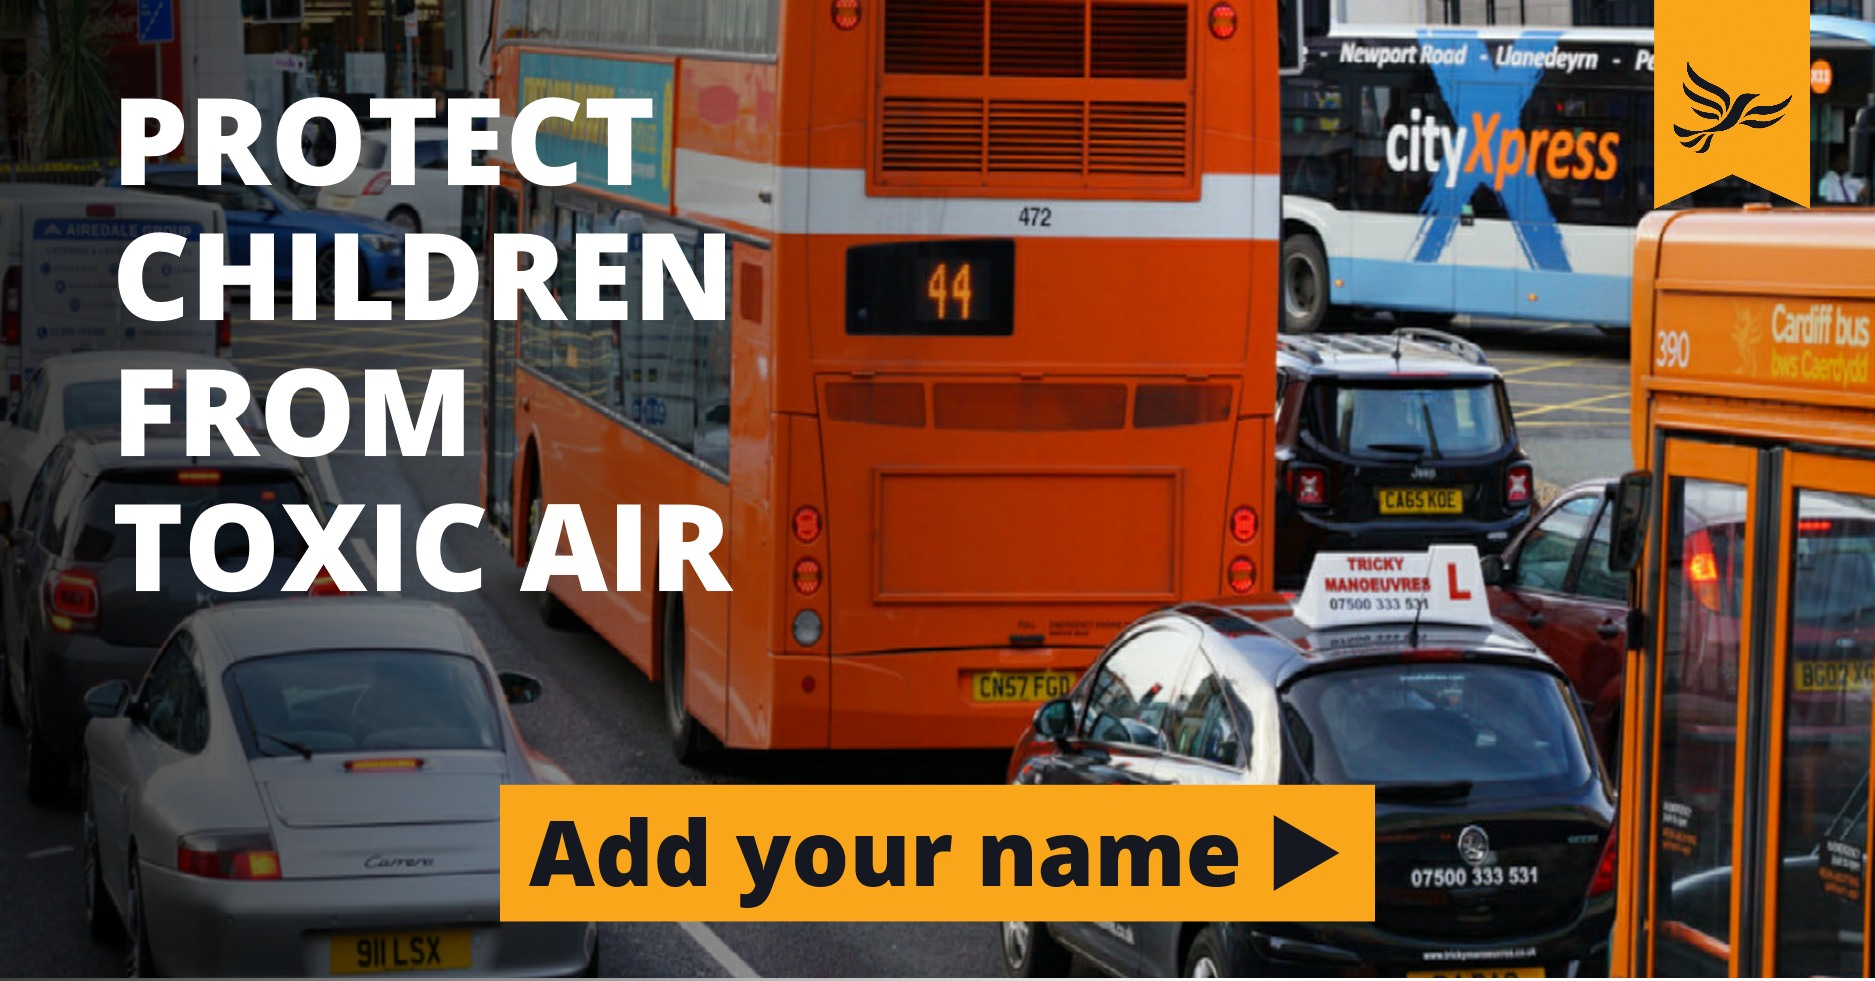 Protect children from toxic air